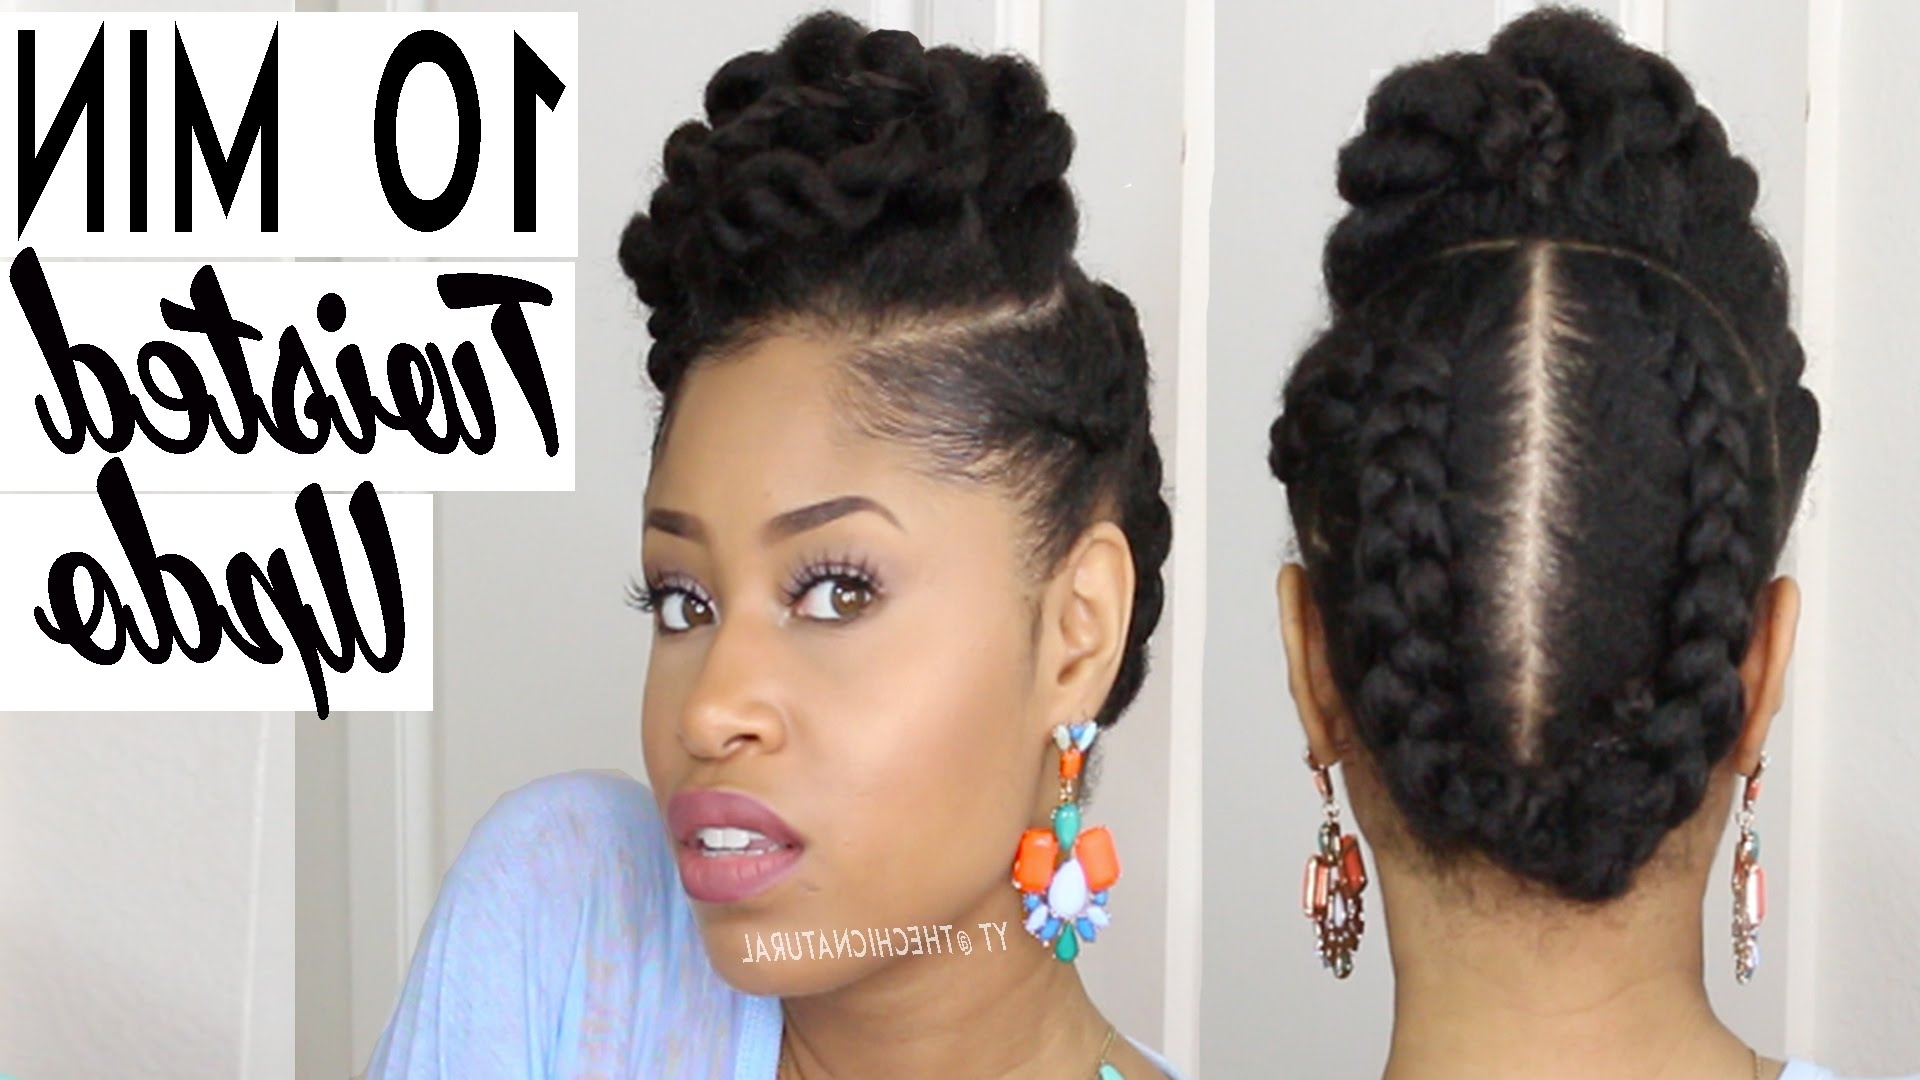 The 10 Minute Twisted Updo | Natural Hairstyle – Youtube Intended For Natural Updo Hairstyles For Black Hair (View 13 of 15)